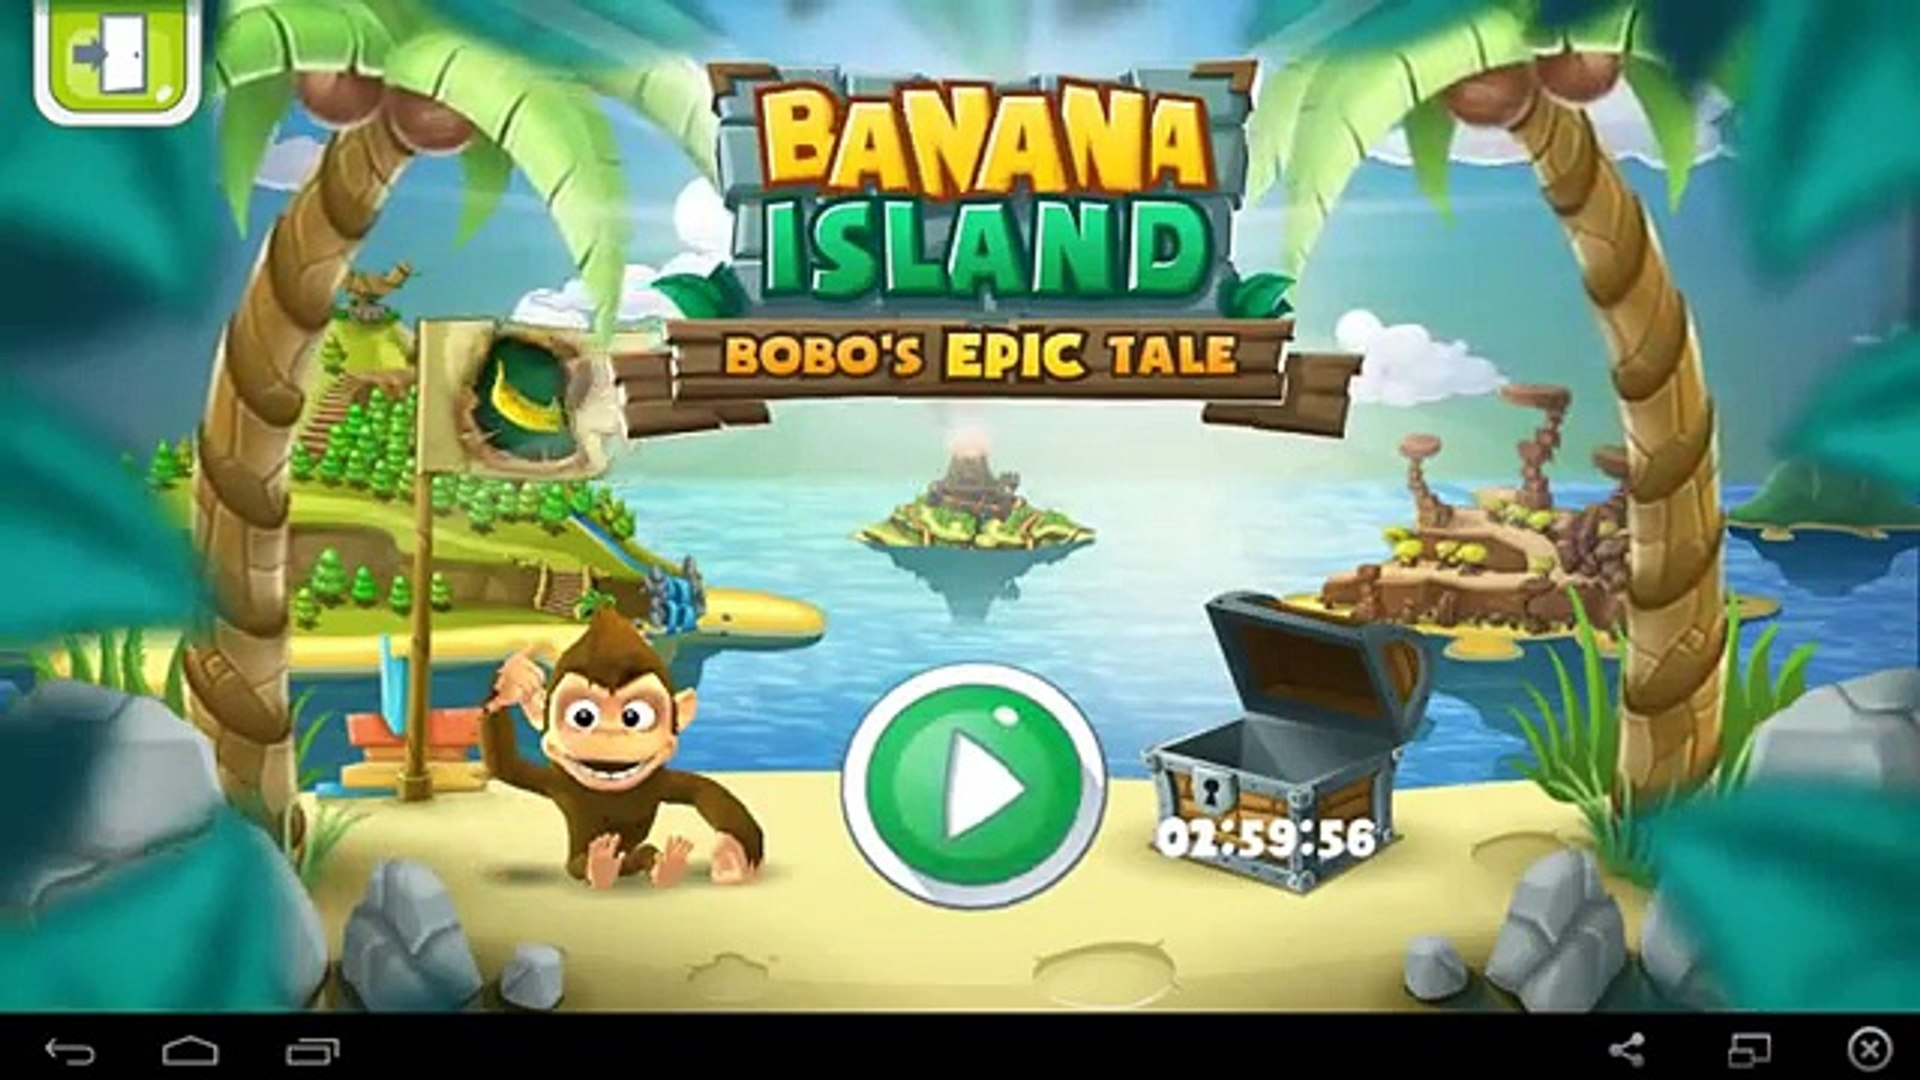 Banana Island–Bobos Epic Tale - for Android GamePlay